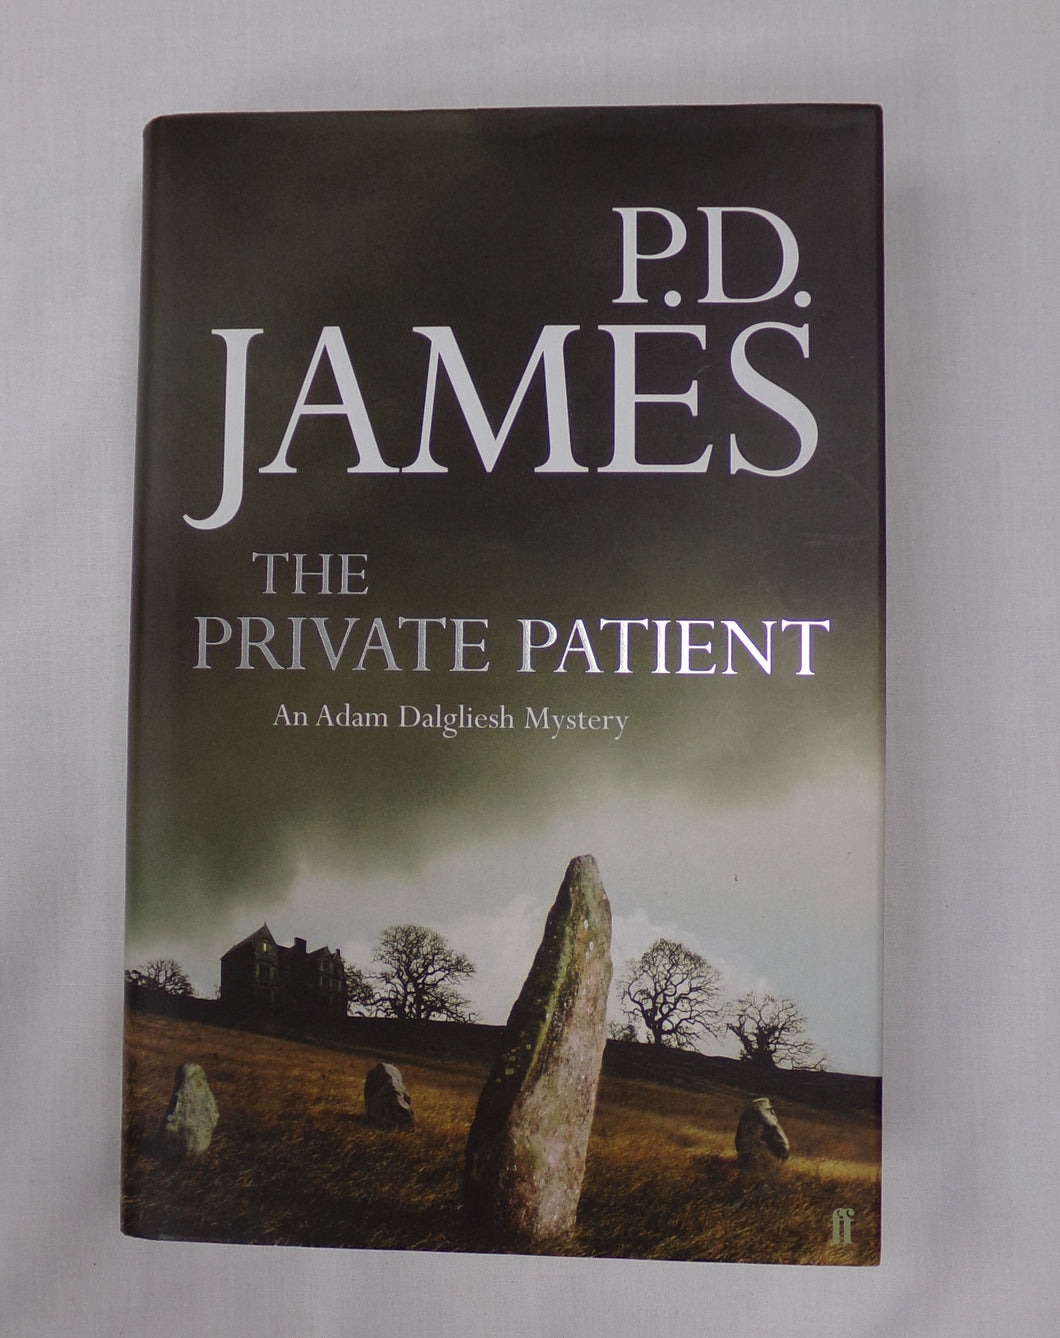 The Private Patient. An Adam Dalgliesh Mystery. By P.D.James. Hardback Book Published by Faber & Faber  ISBN - 97805741242443